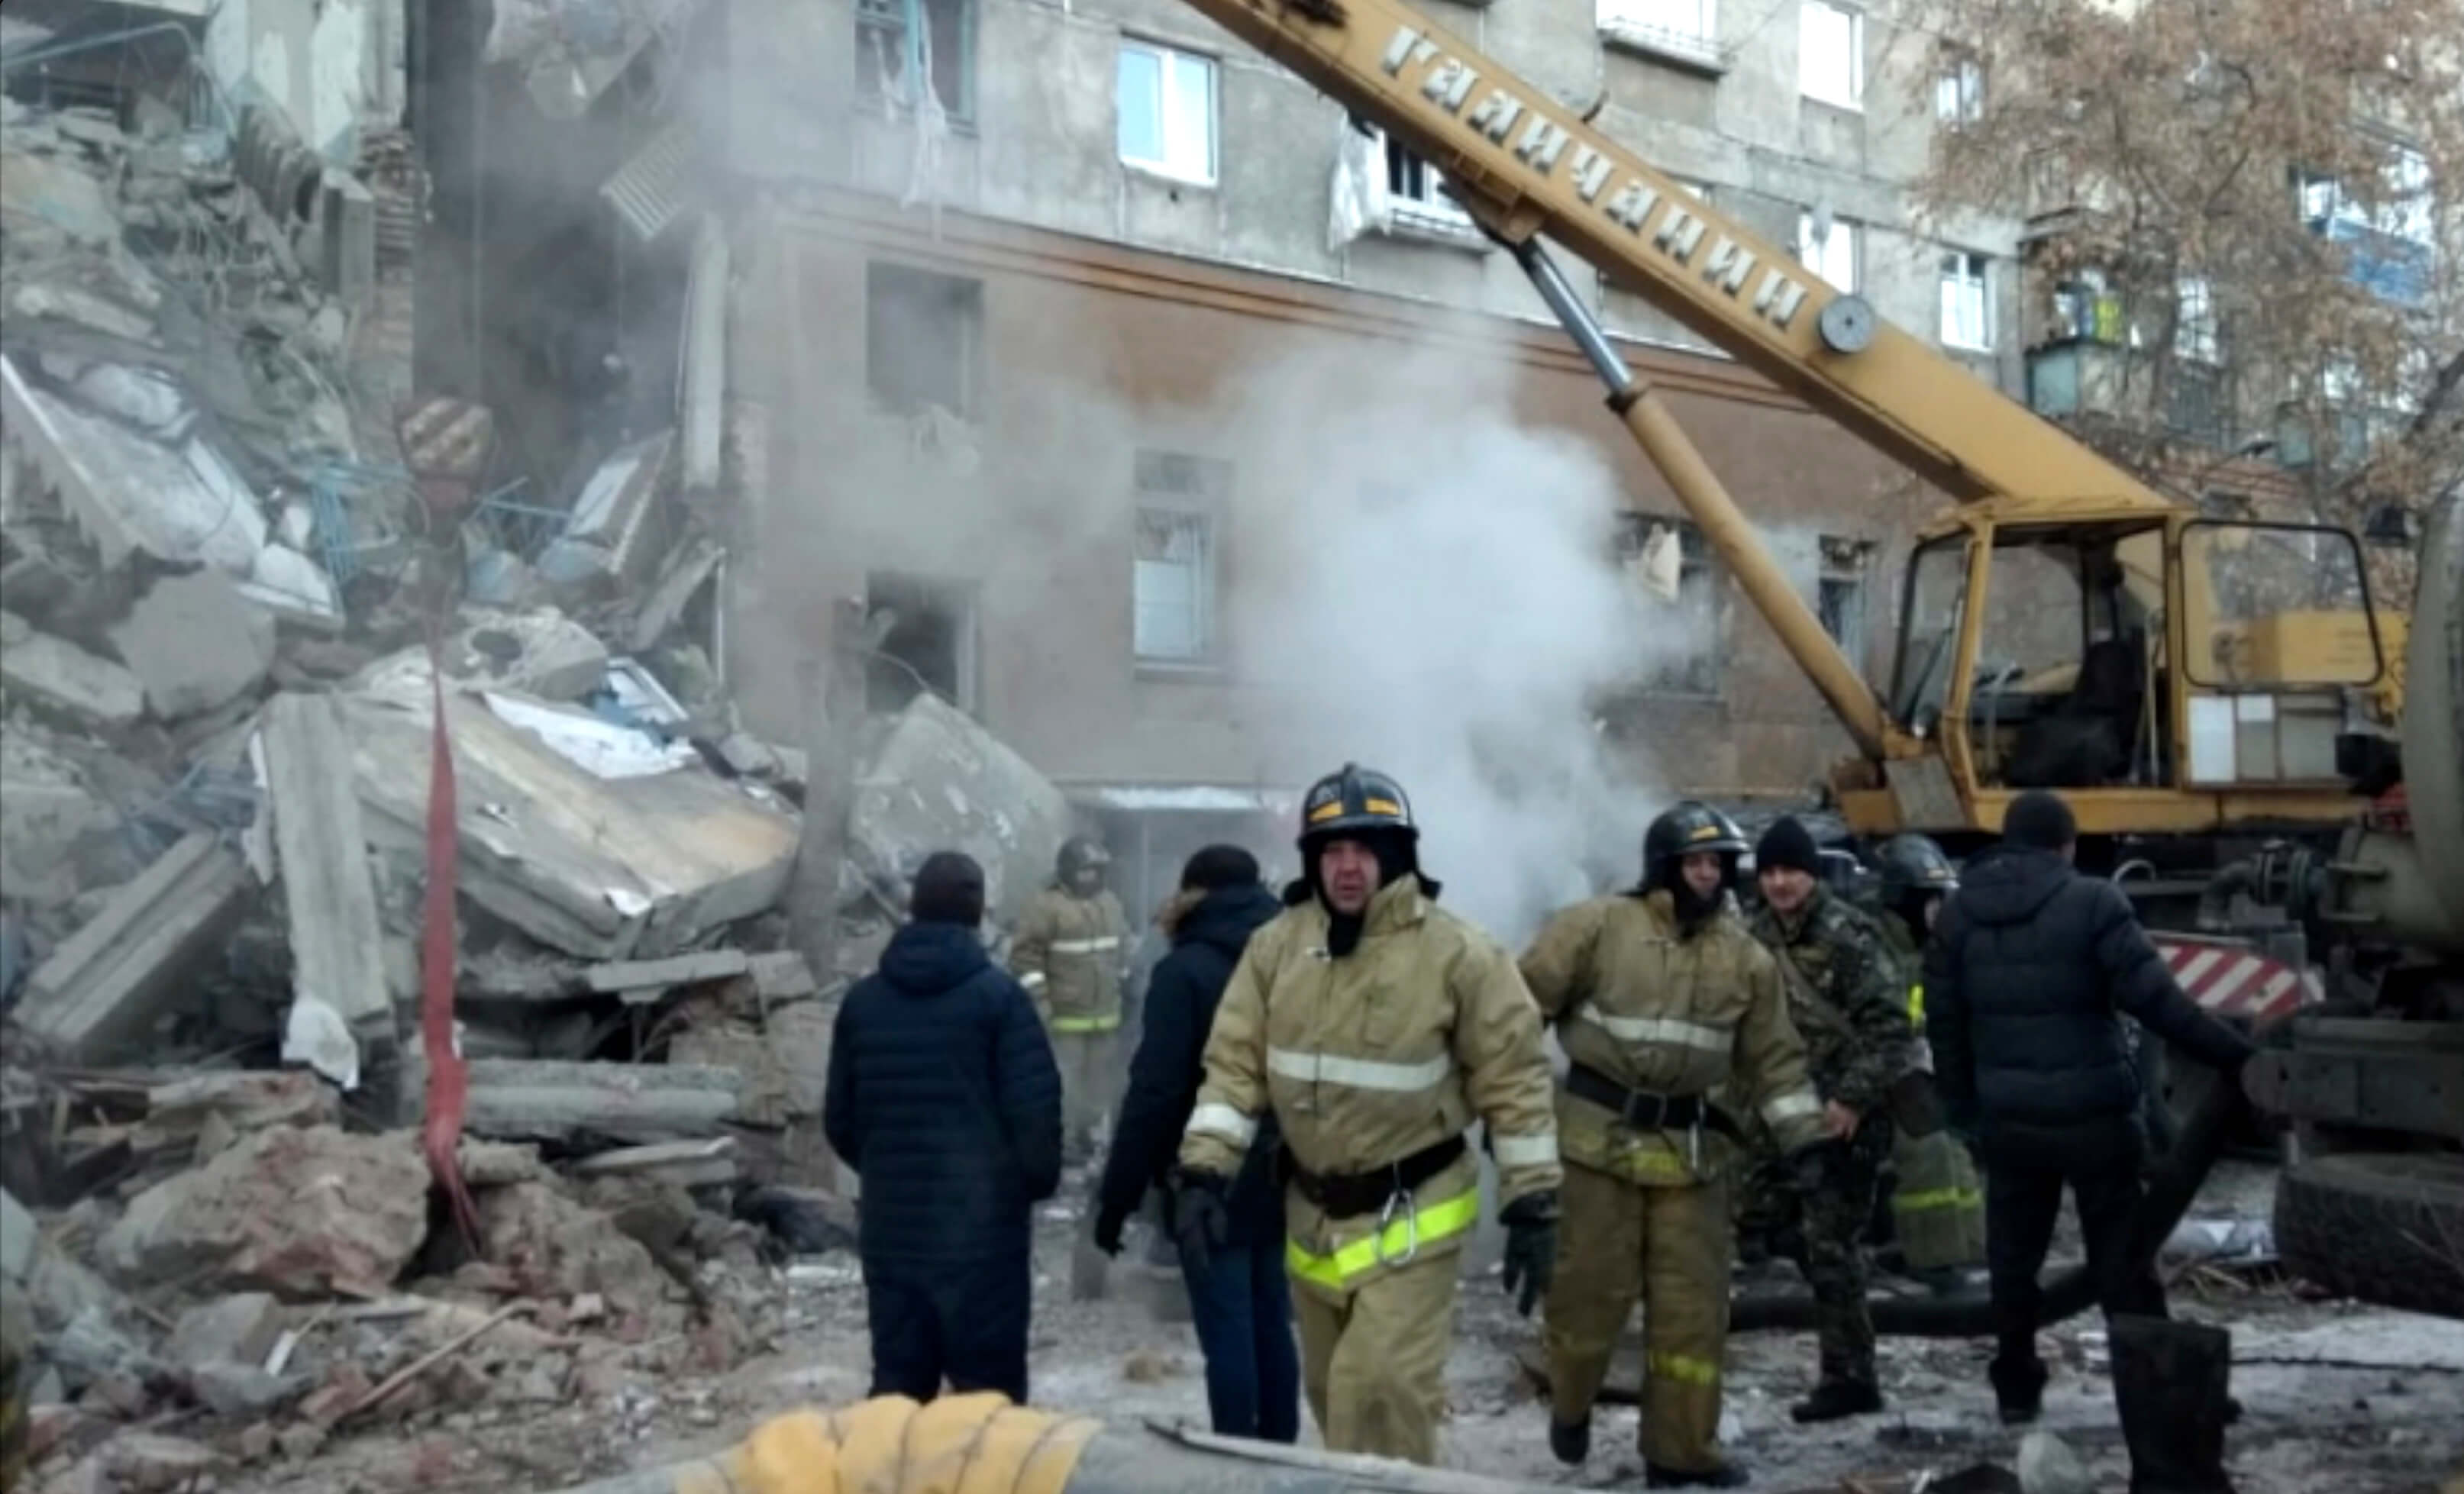 This photo provided by the Russian Emergency Situations Ministry taken from tv footage shows Emergency Situations employees working at the scene of a collapsed section of an apartment building, in Magnitigorsk, Russia, Monday, Dec. 31, 2018. (Russian Ministry for Emergency Situations photo via AP)